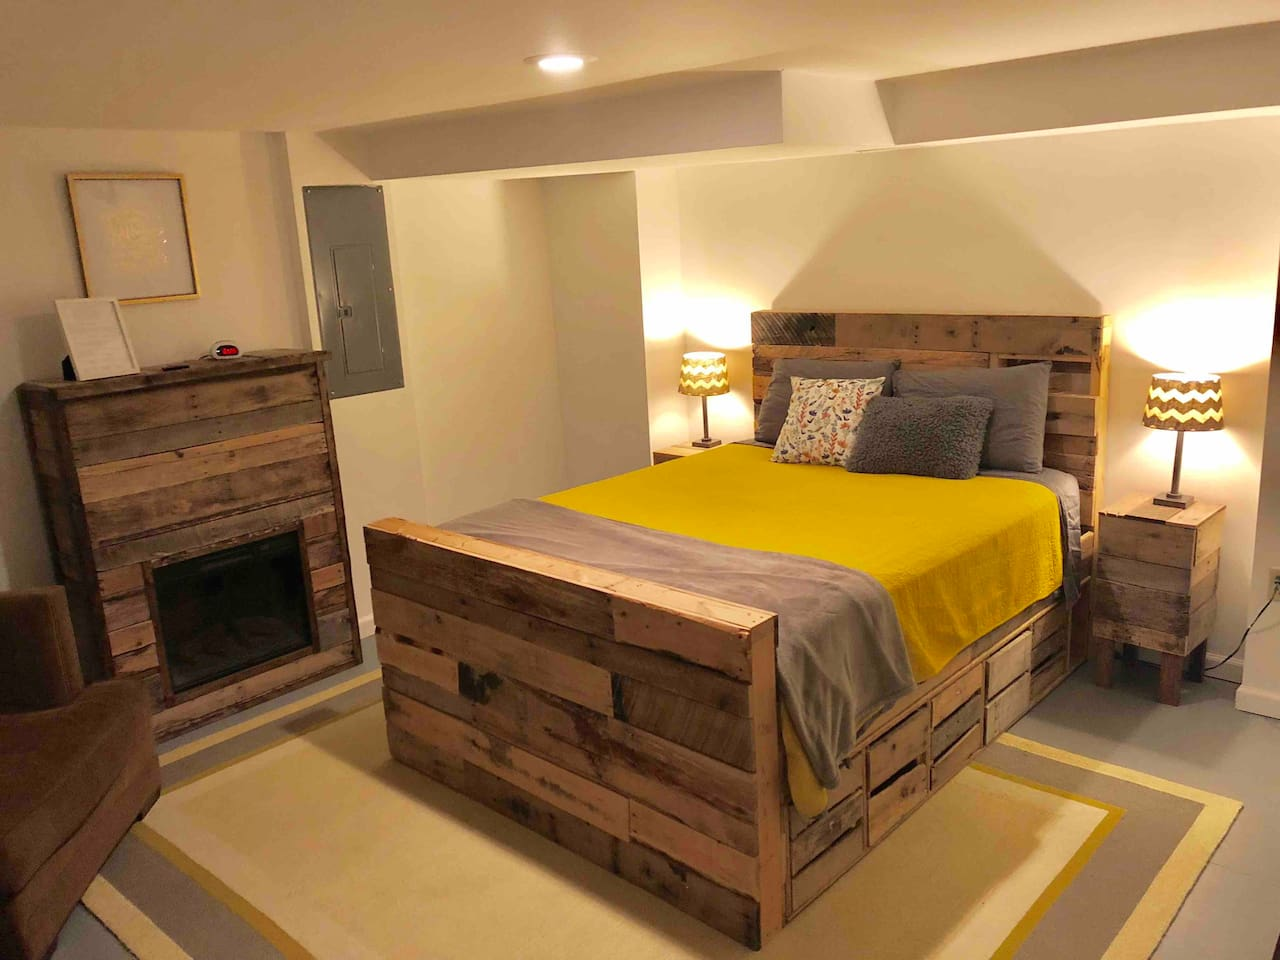 Bed Room 1: Queen Bed and Electric Fireplace